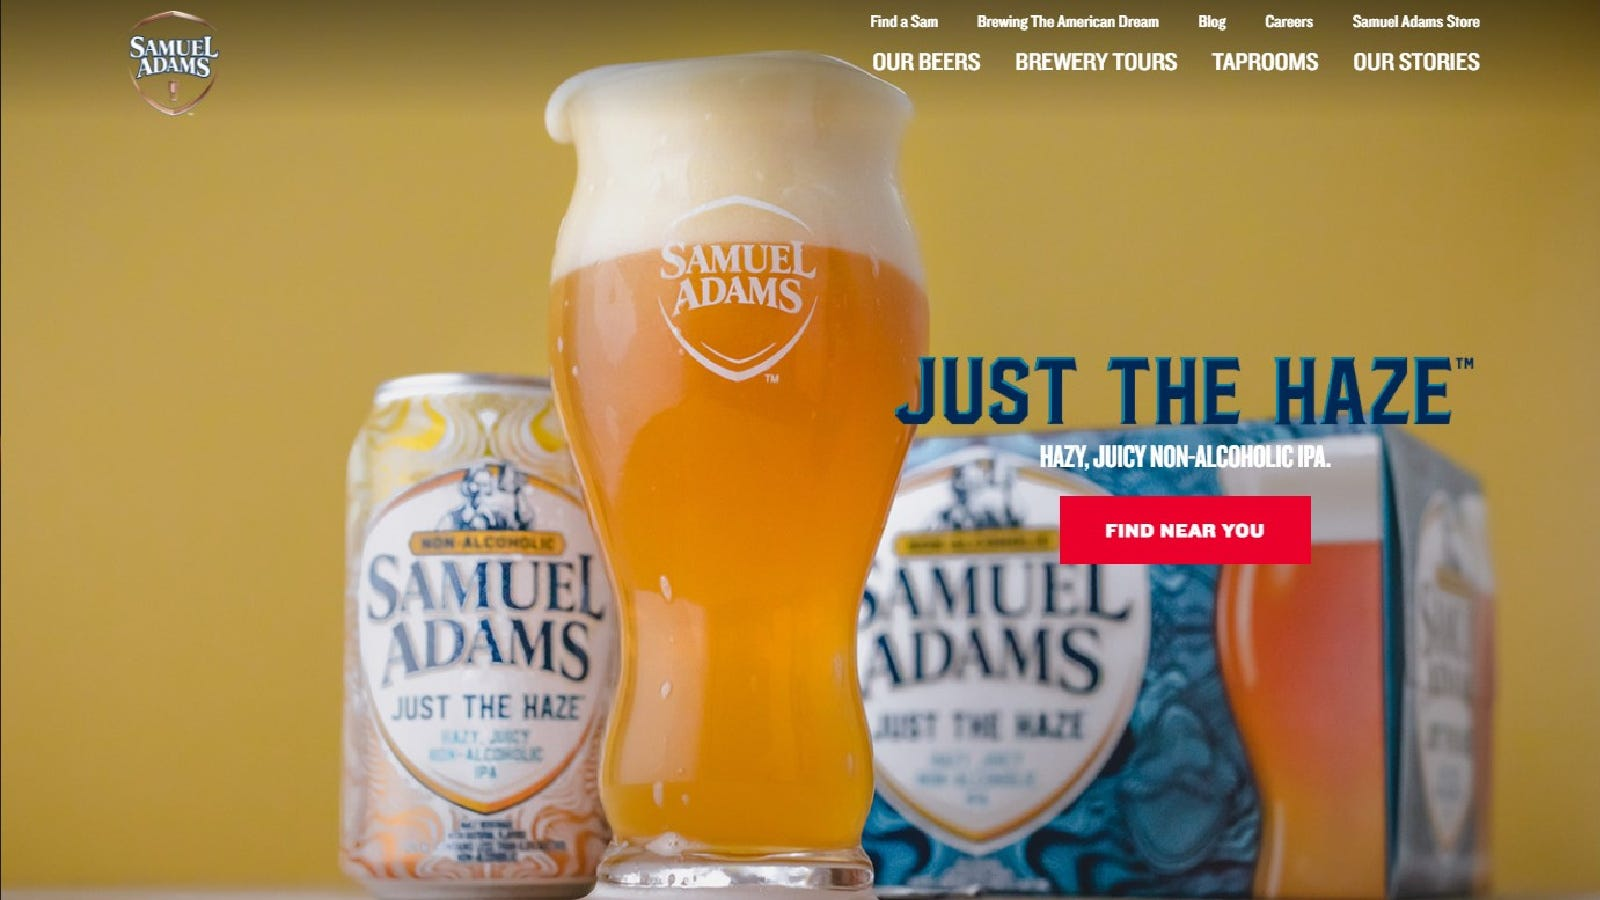 Samuel Adams Just the Haze non-alcoholic IPA freshly poured into a pint glass, with a 1 inch foam head, ready to be enjoyed, with a can and 6-pack box in the background.